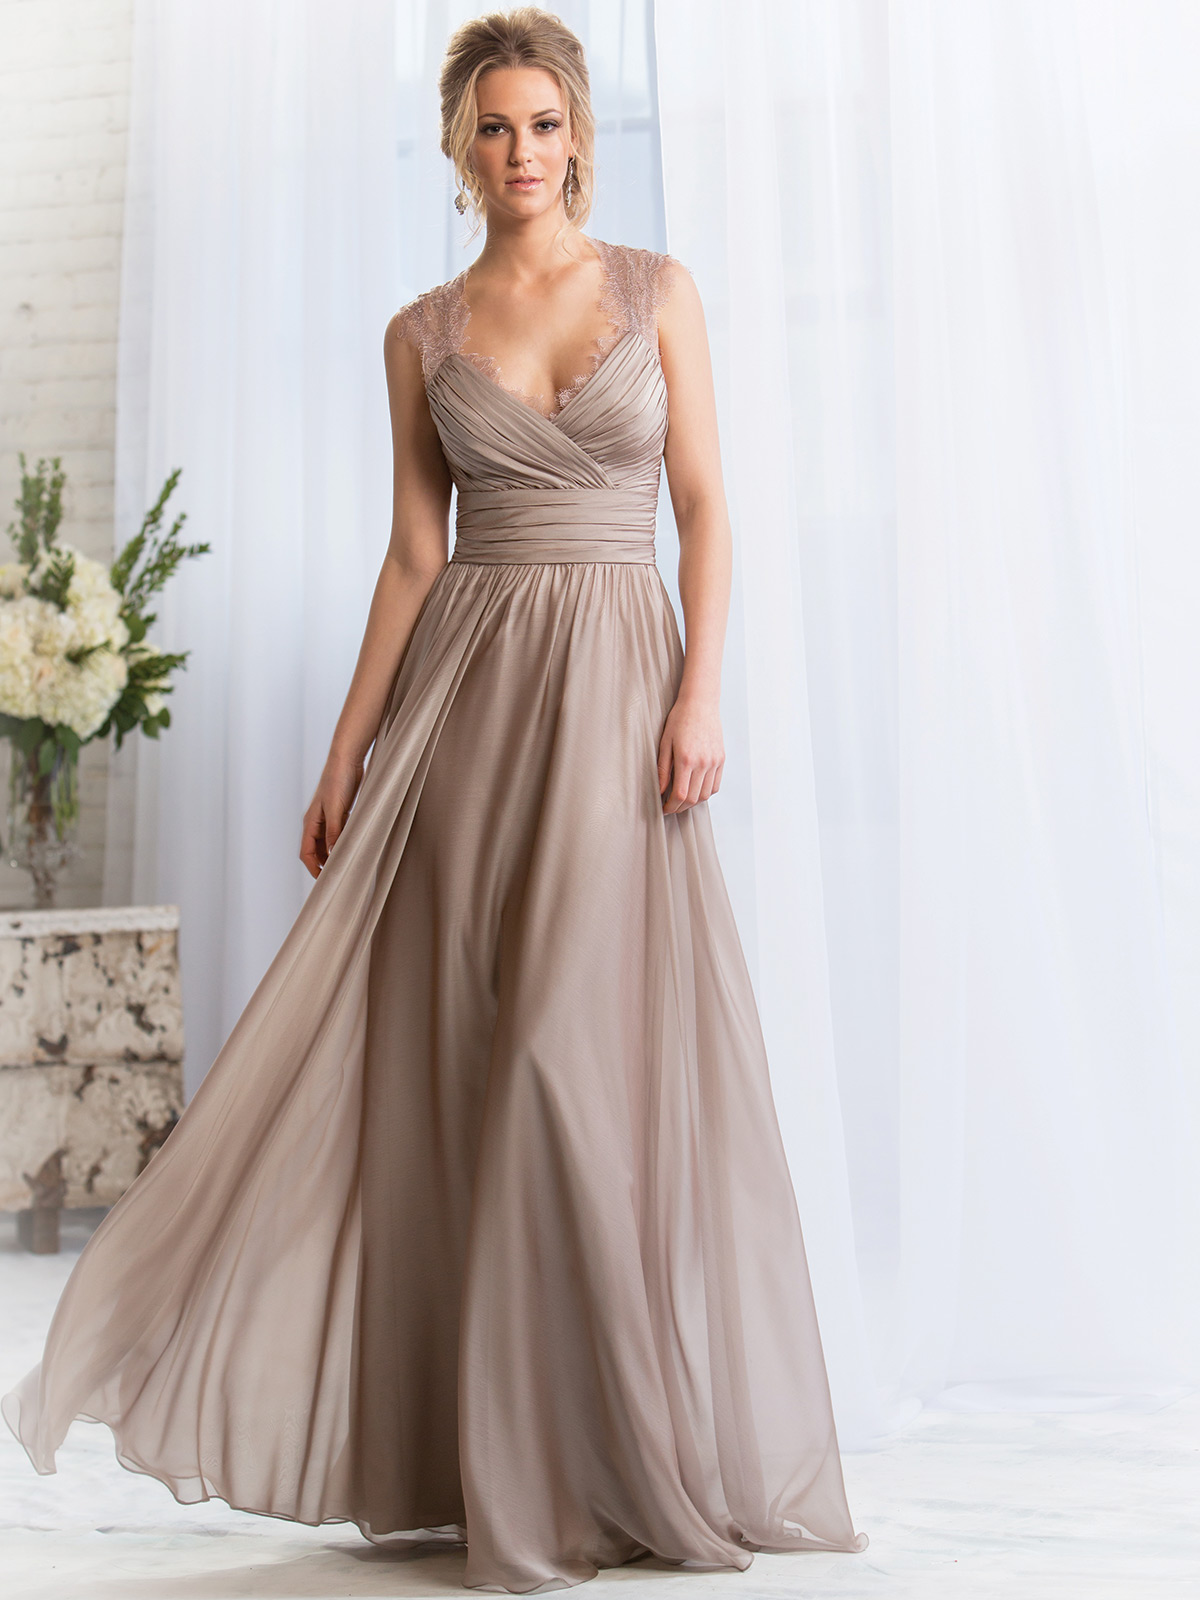 Belsoie bridesmaid dress l164057 dimitradesigns cap sleeves pleated belsoie bridesmaids dress by jasmine l164057 ombrellifo Choice Image